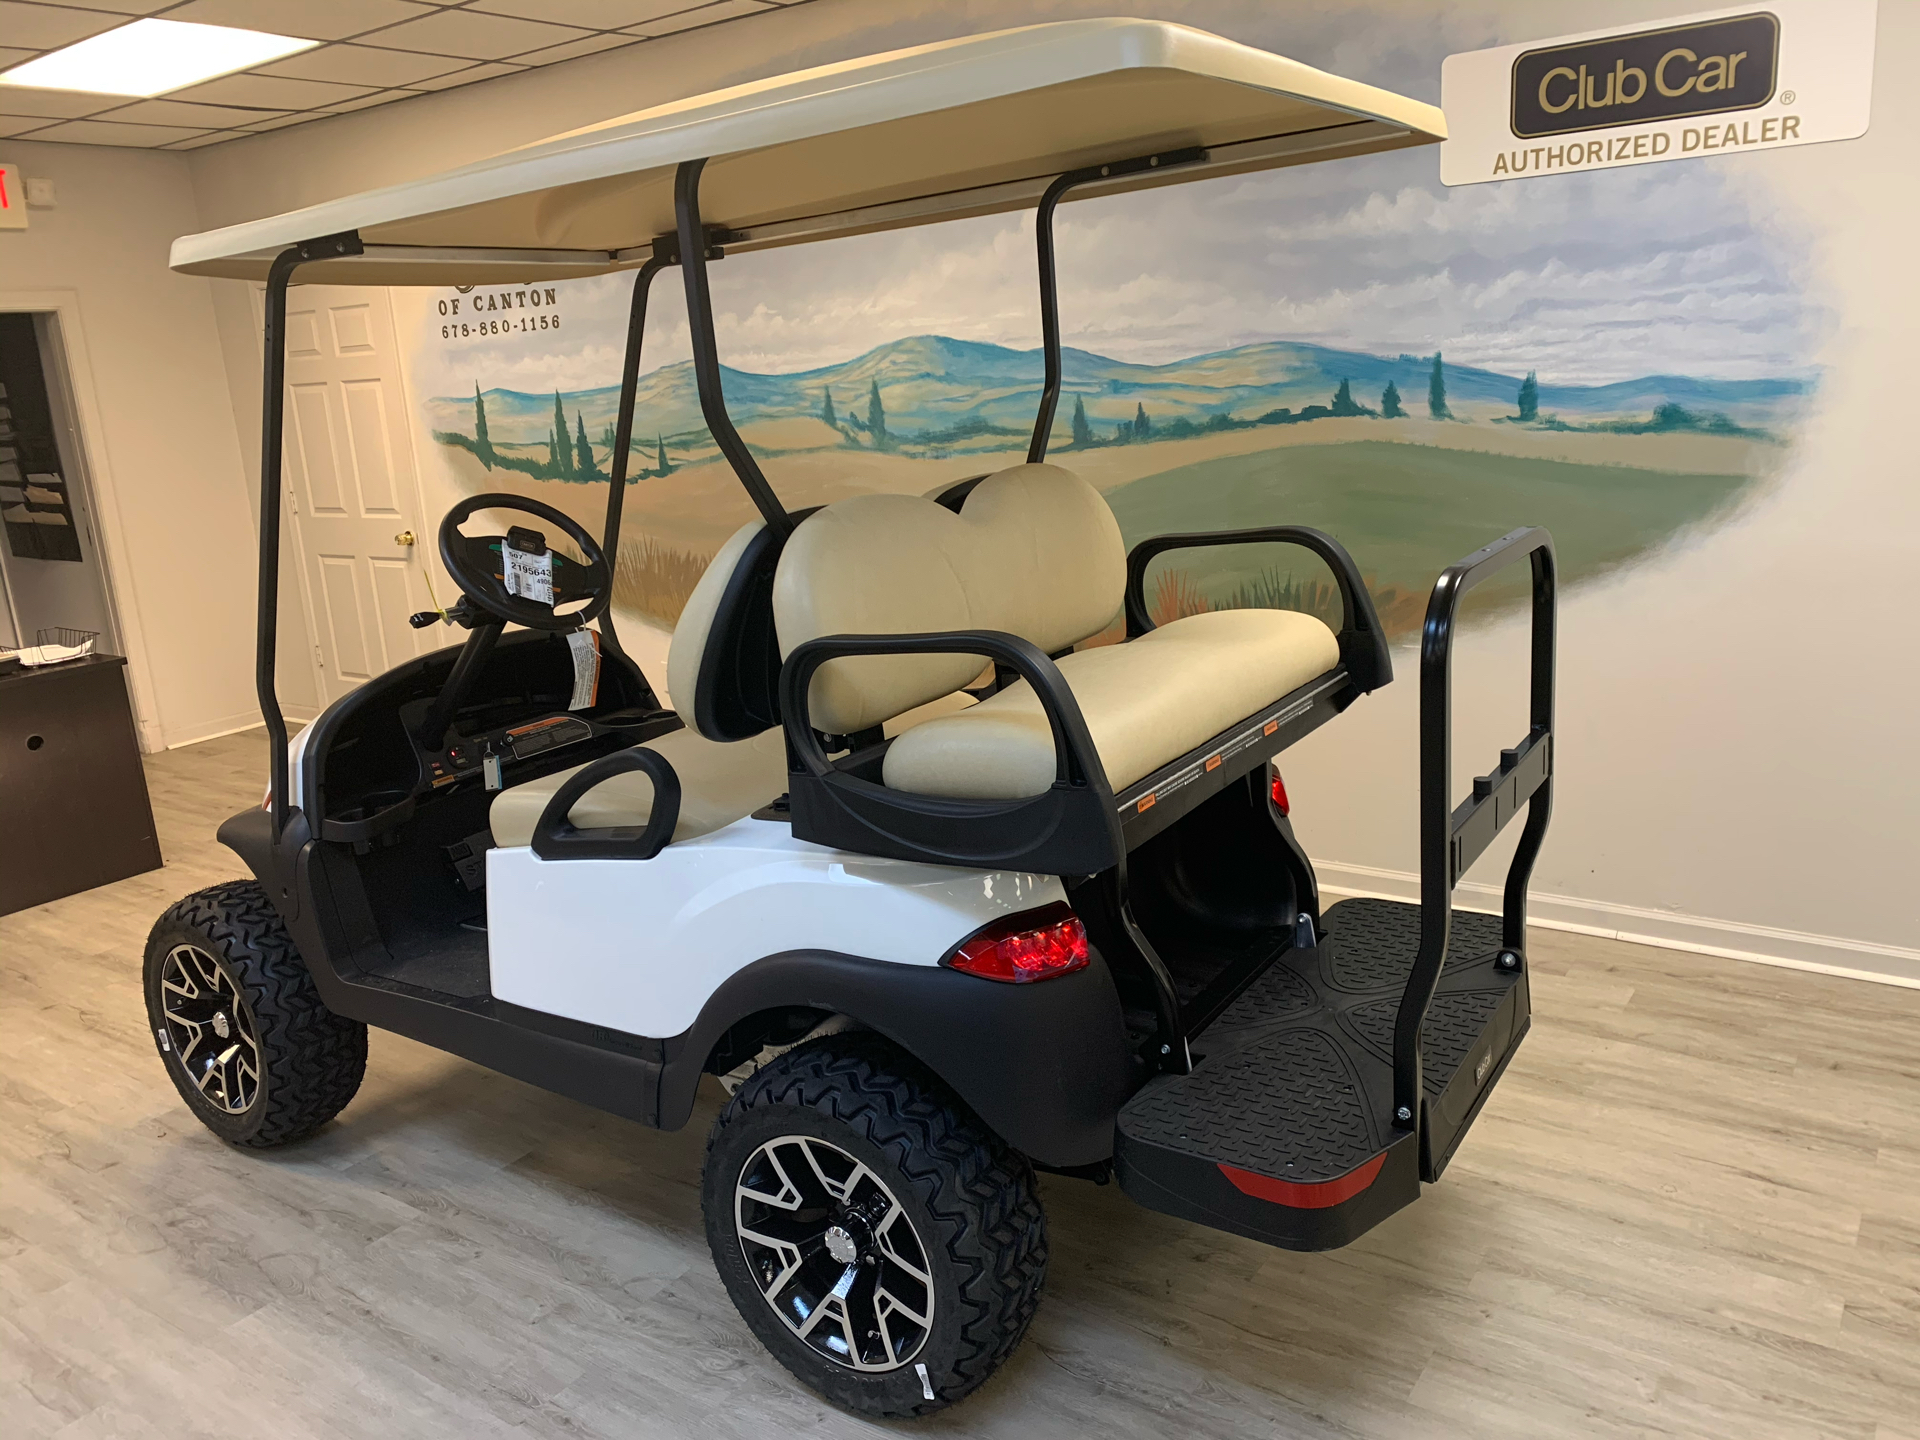 2021 Club Car V4L Gas in Canton, Georgia - Photo 11